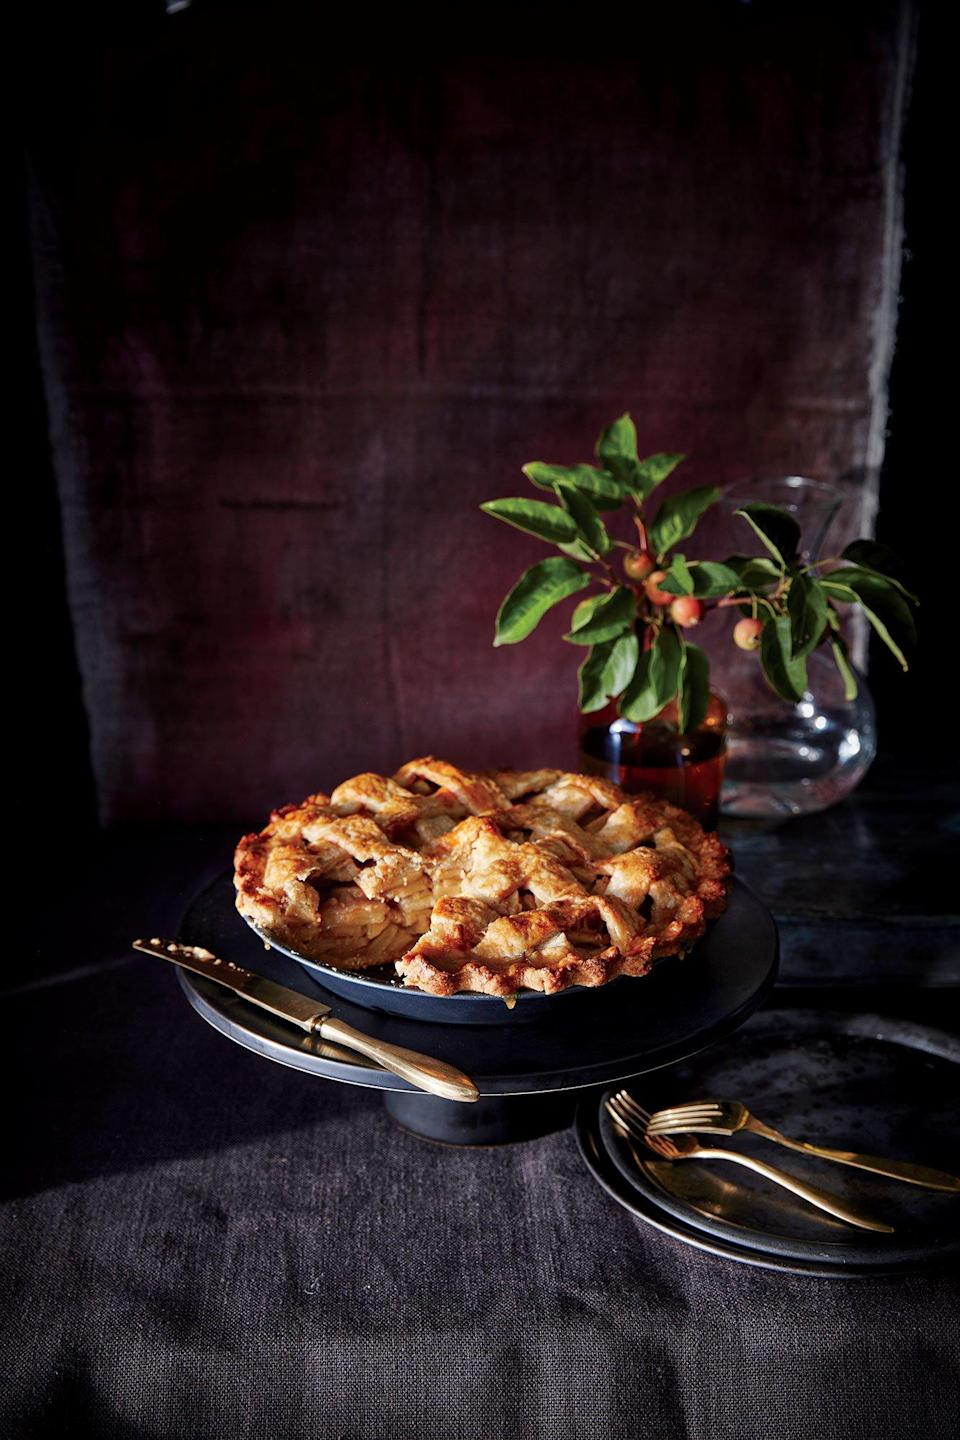 """<p>Grated apple is the secret to a syrupy pie filling--it releases more pectin (a natural thickener) than the sliced apples alone. A quick salted caramel intensifies the apple flavor without making the dessert too sweet.</p> <p><a href=""""https://www.myrecipes.com/recipe/salted-caramel-apple-pie"""" rel=""""nofollow noopener"""" target=""""_blank"""" data-ylk=""""slk:Salted Caramel Apple Pie Recipe"""" class=""""link rapid-noclick-resp"""">Salted Caramel Apple Pie Recipe</a></p>"""